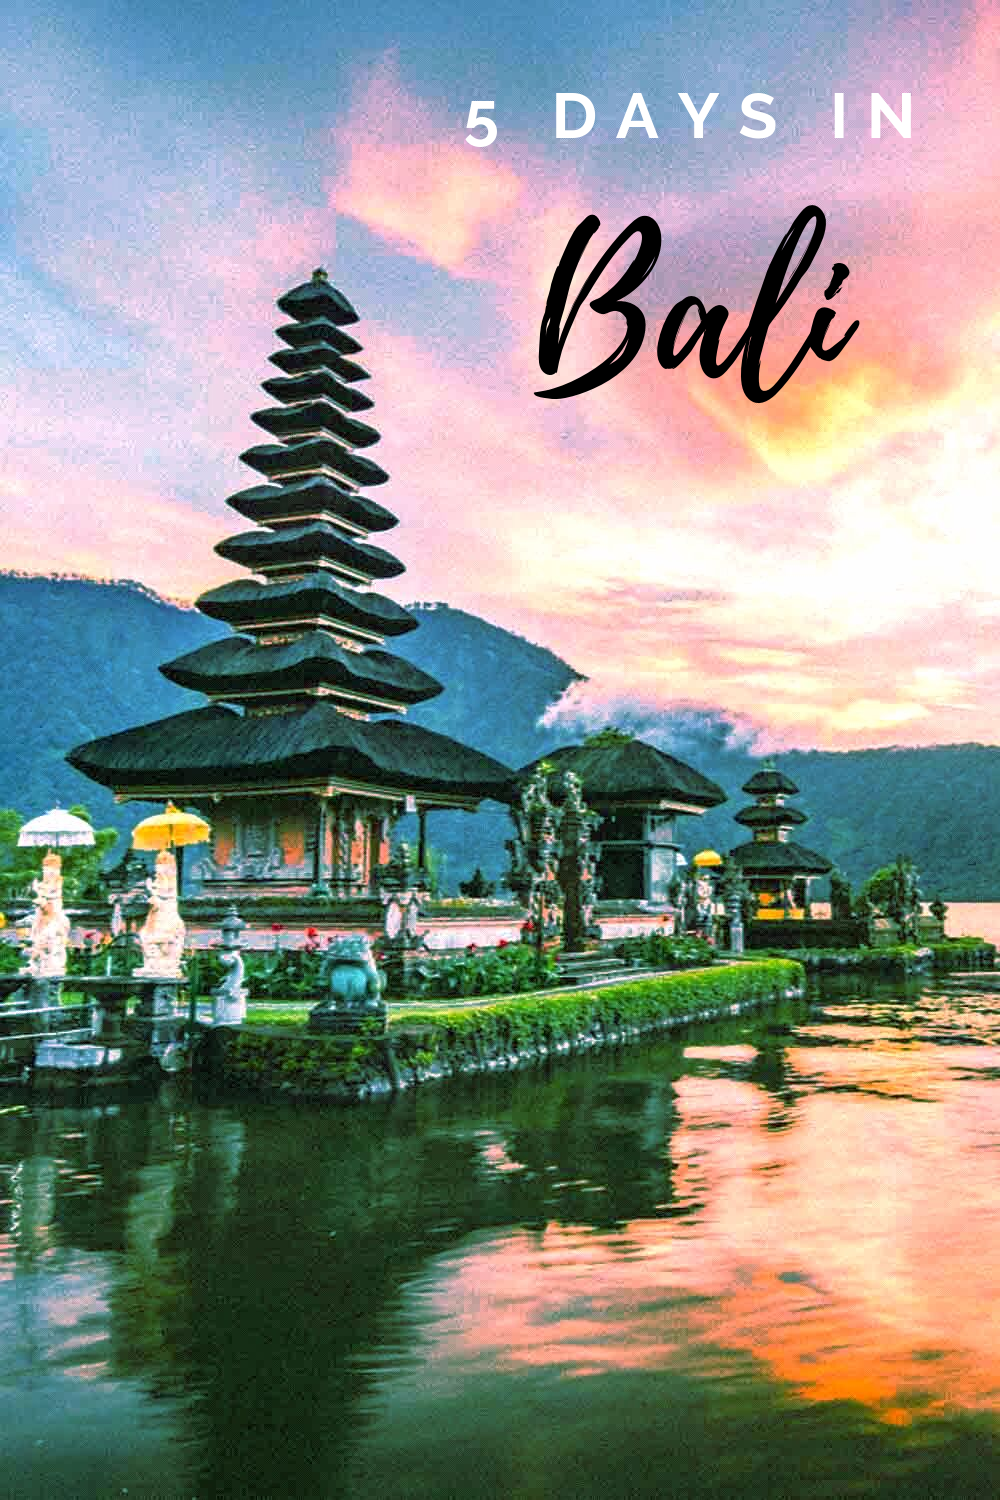 An Affordable Bali 5 Days Itinerary Exclusively Designed For People On Limited Budget And Time Affordablebali B Bali Tour Packages Bali Tours Holiday Travel